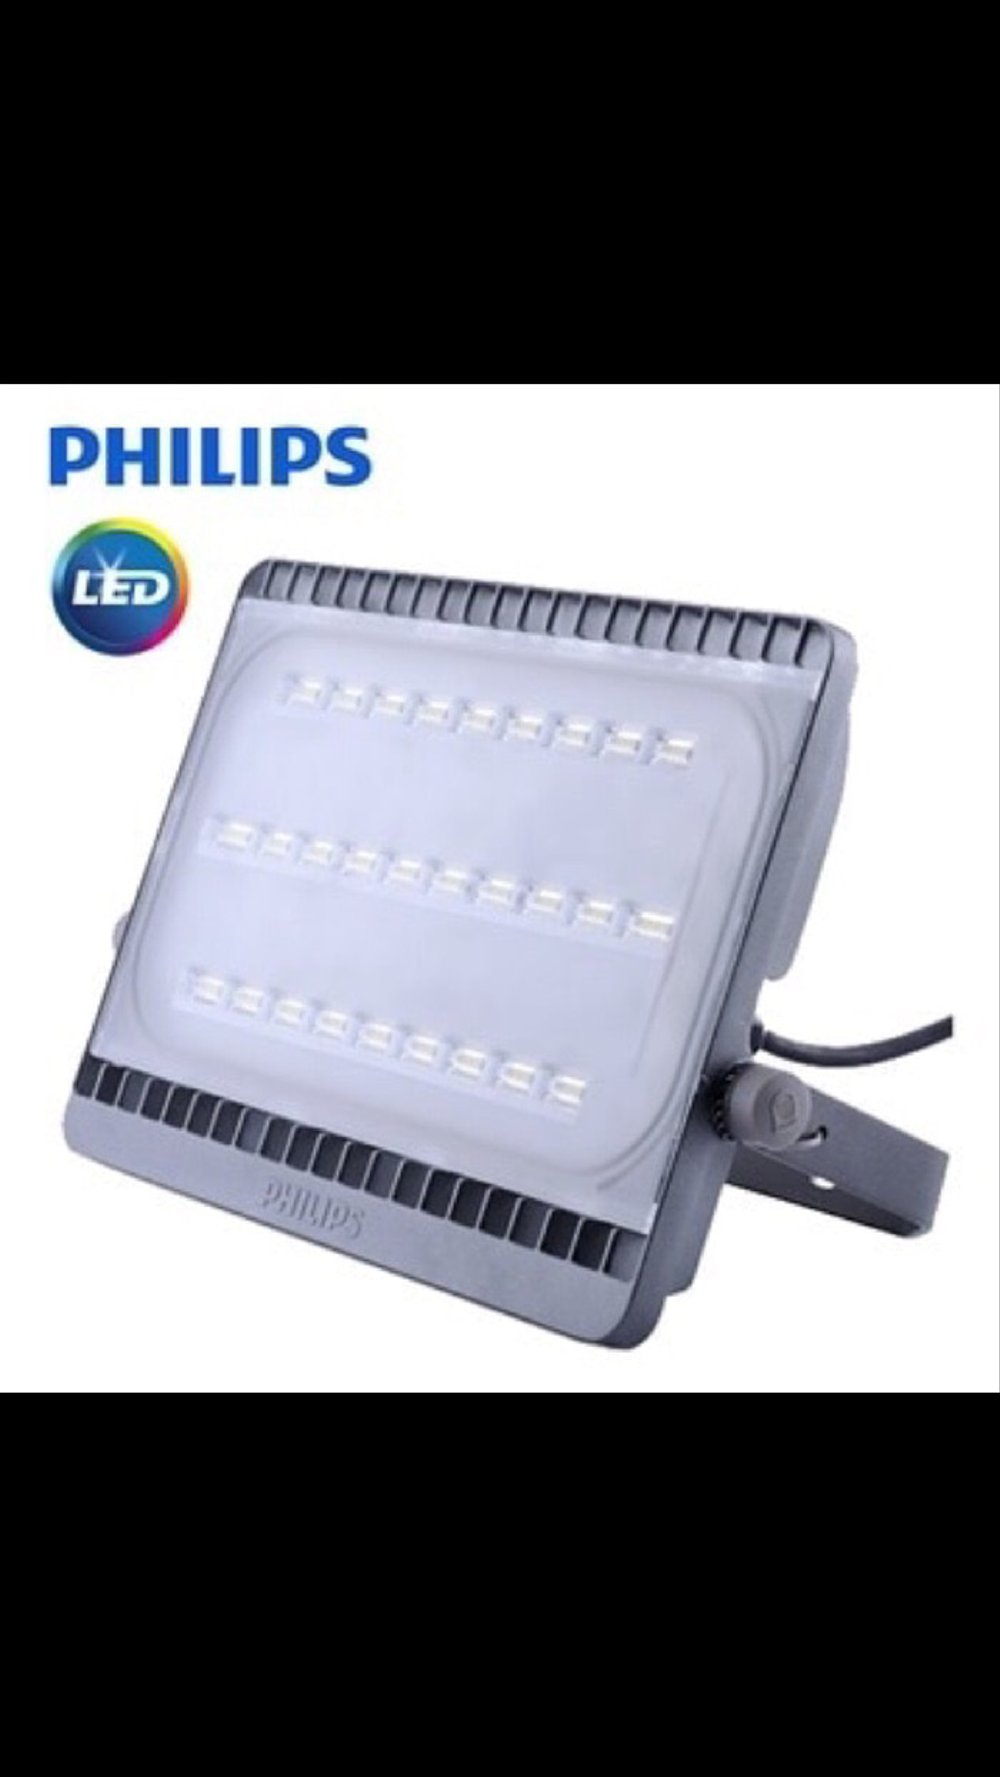 Lampu sorot LED 100w PHILIPS BVP 161